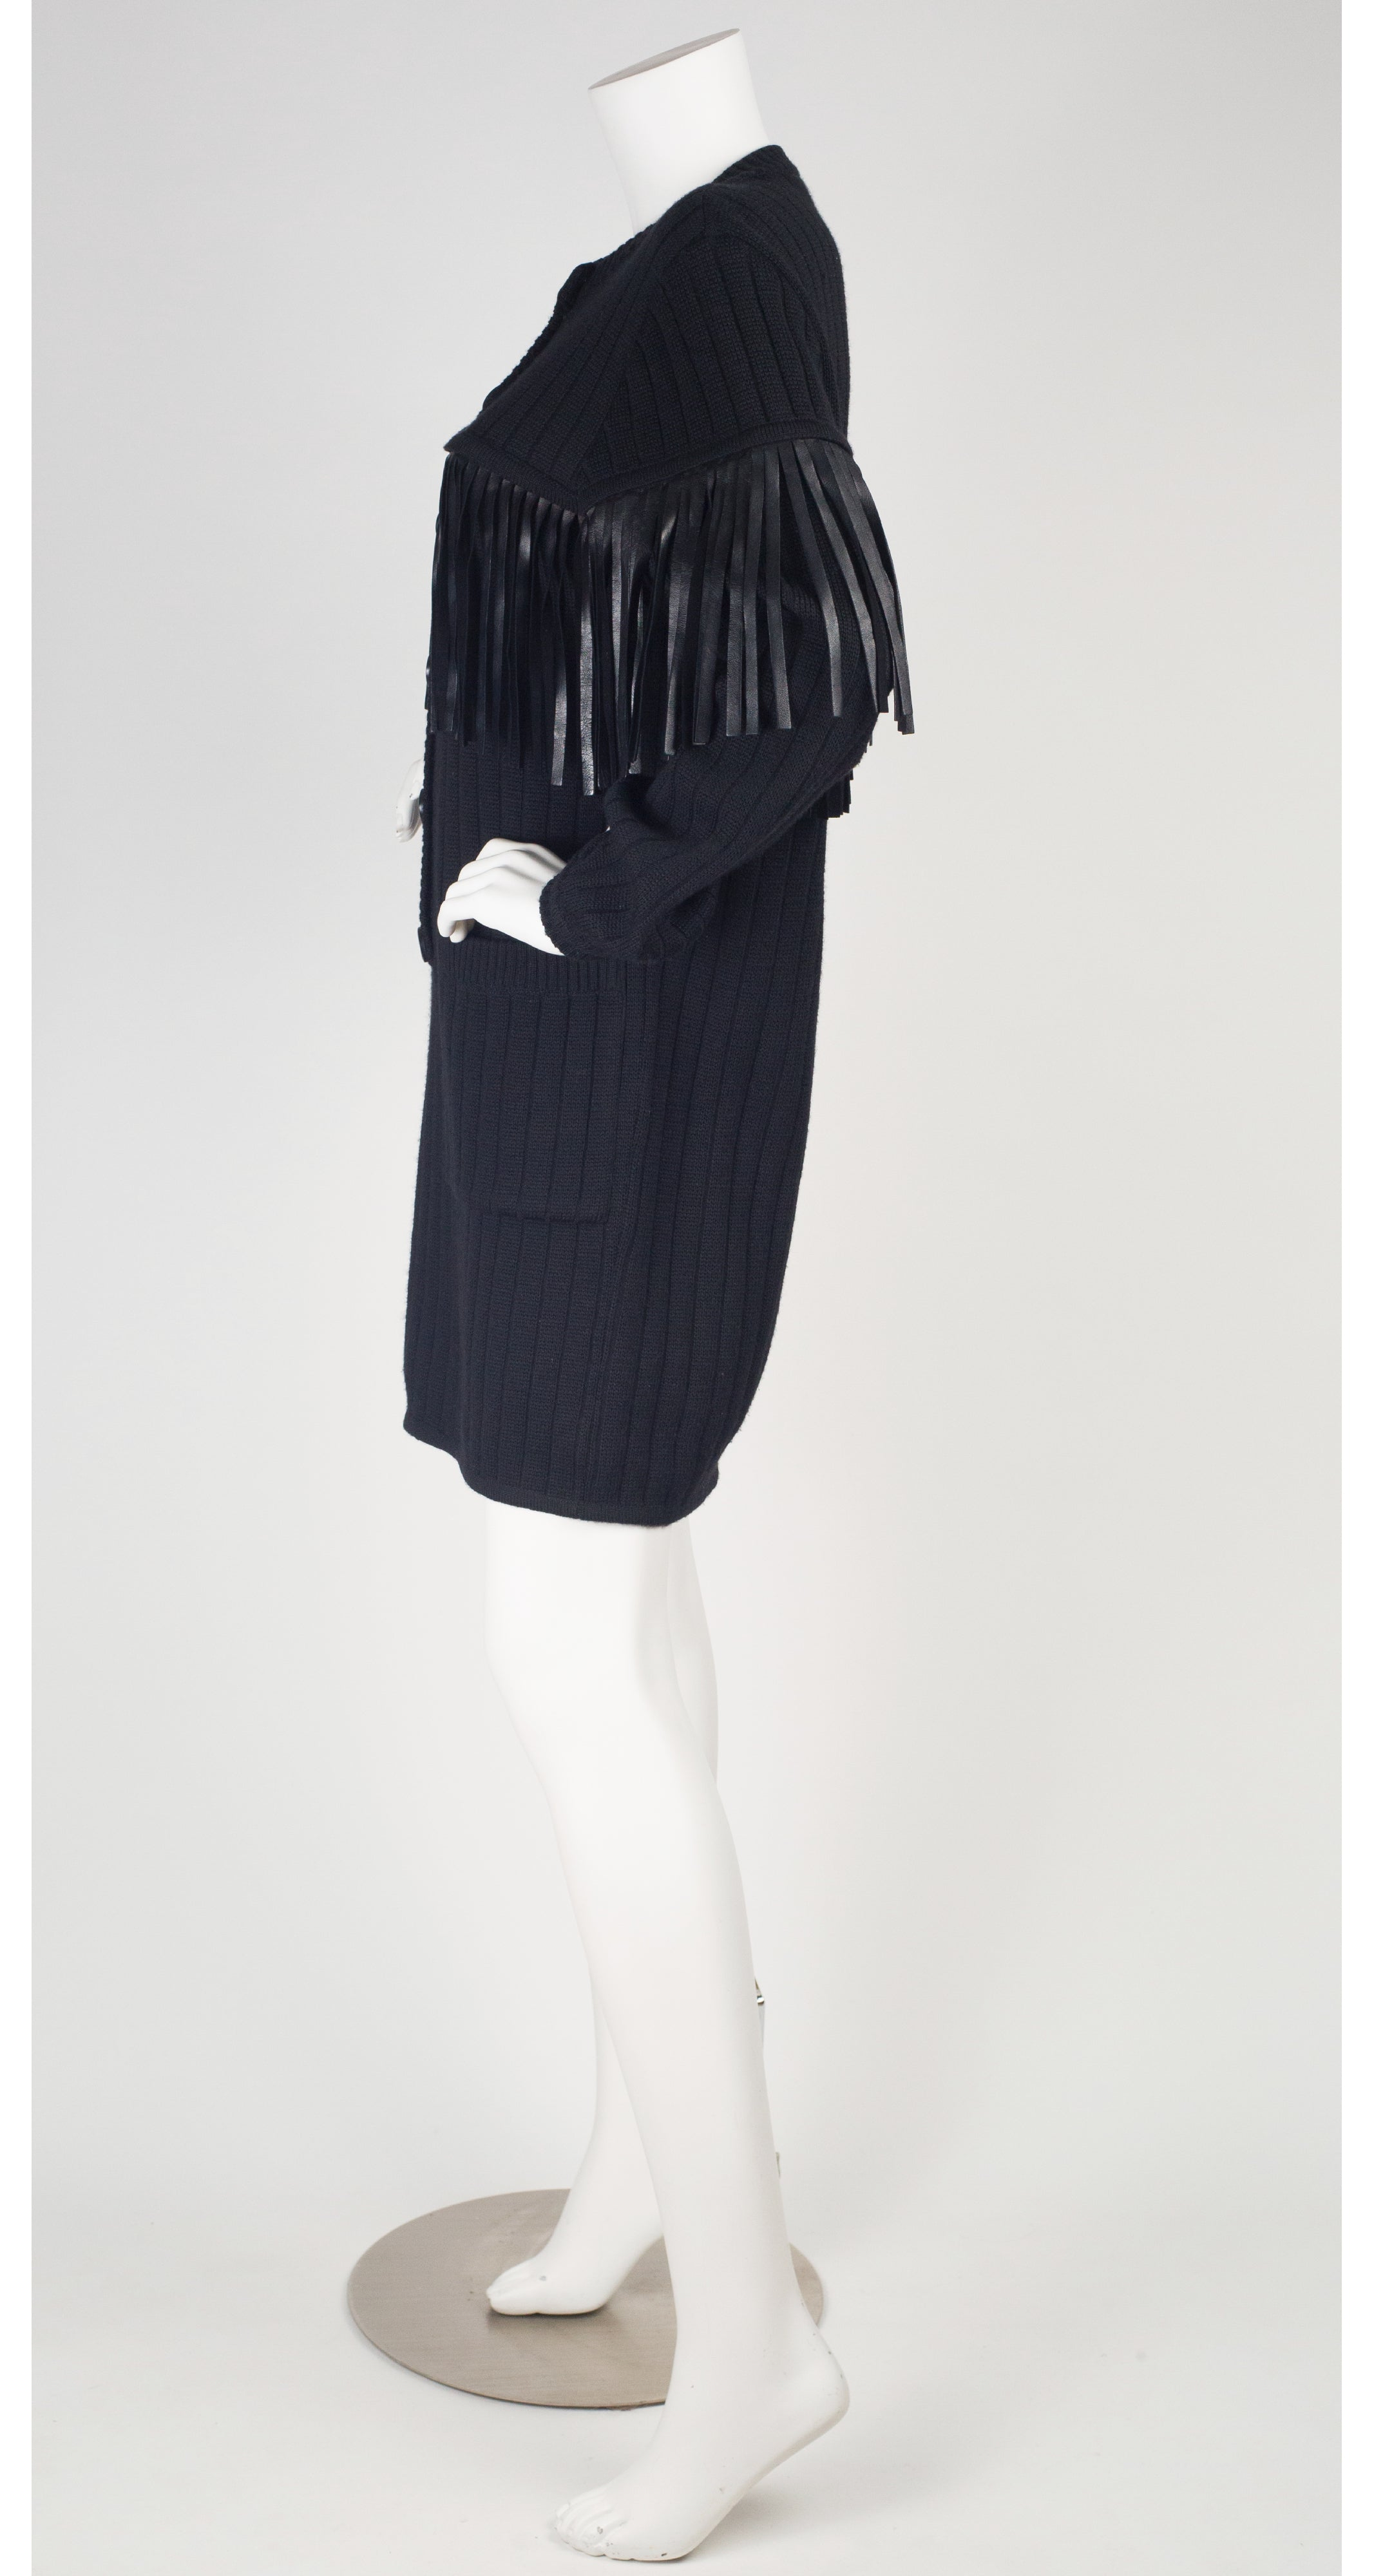 1989-90 F/W Runway Black Leather Fringe Sweater Dress